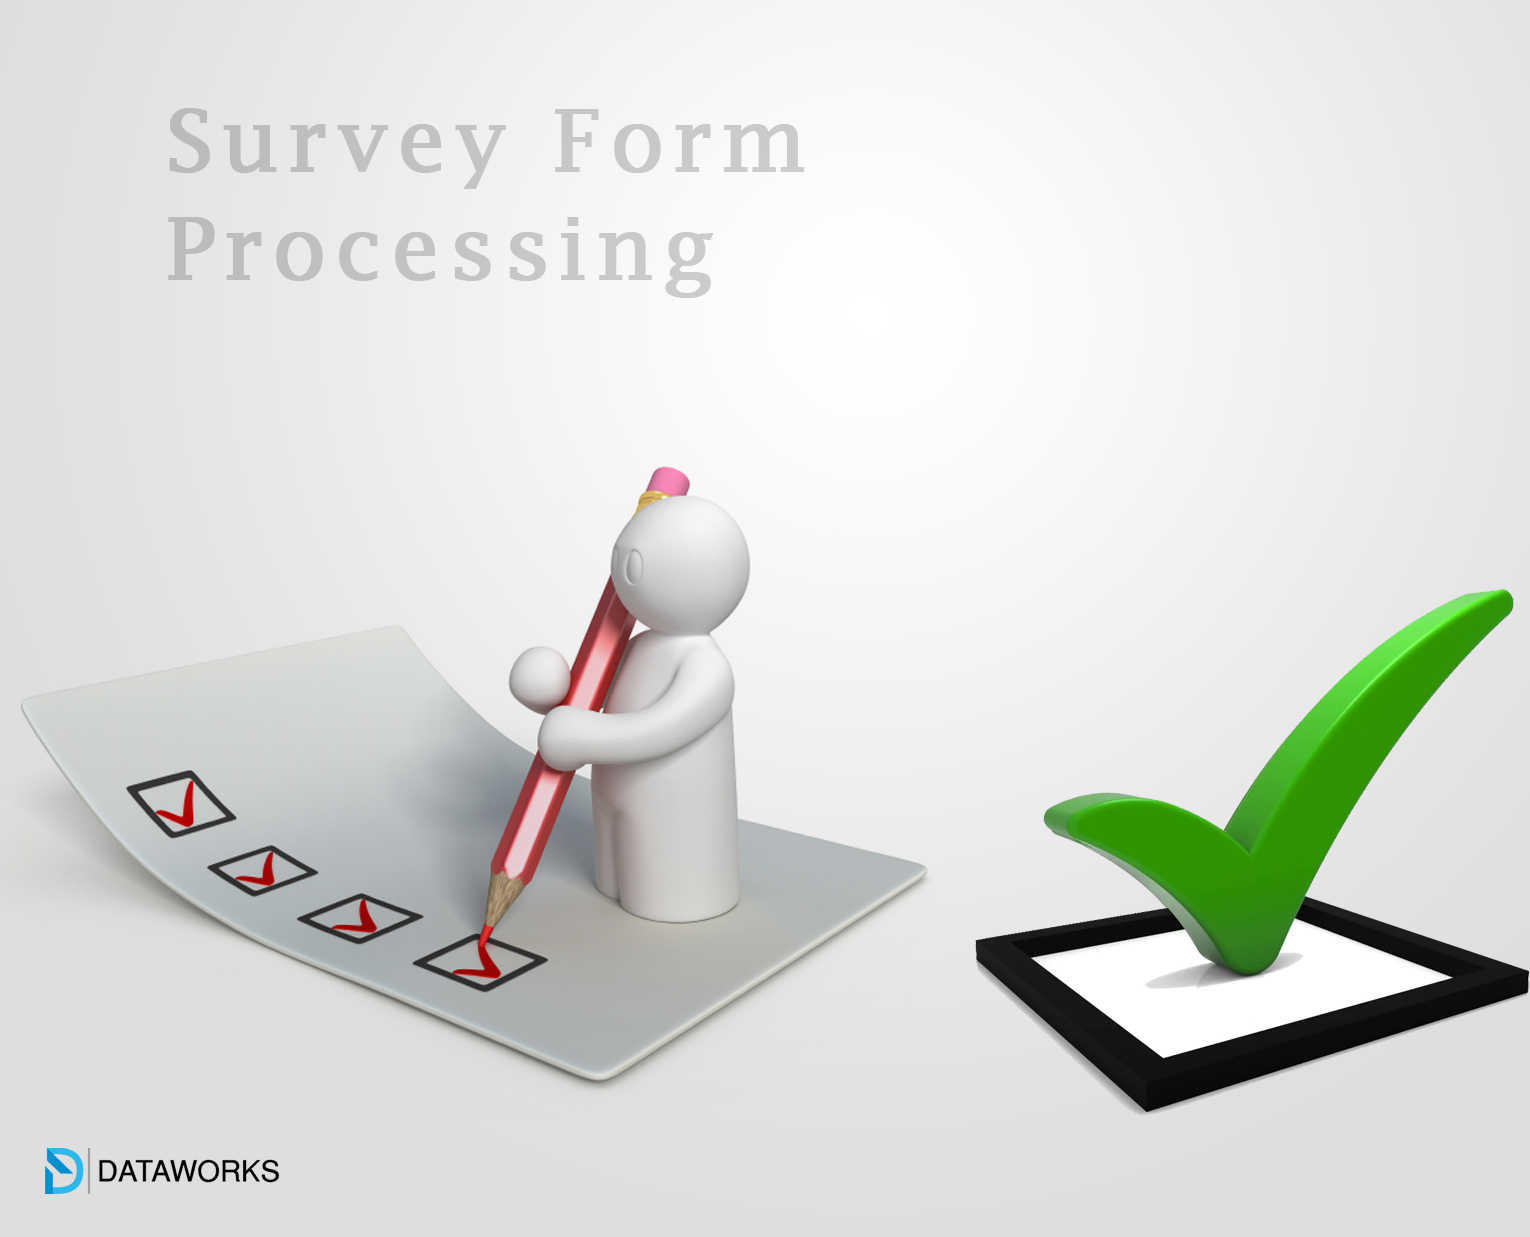 Tips to select the right survey forms processing partner